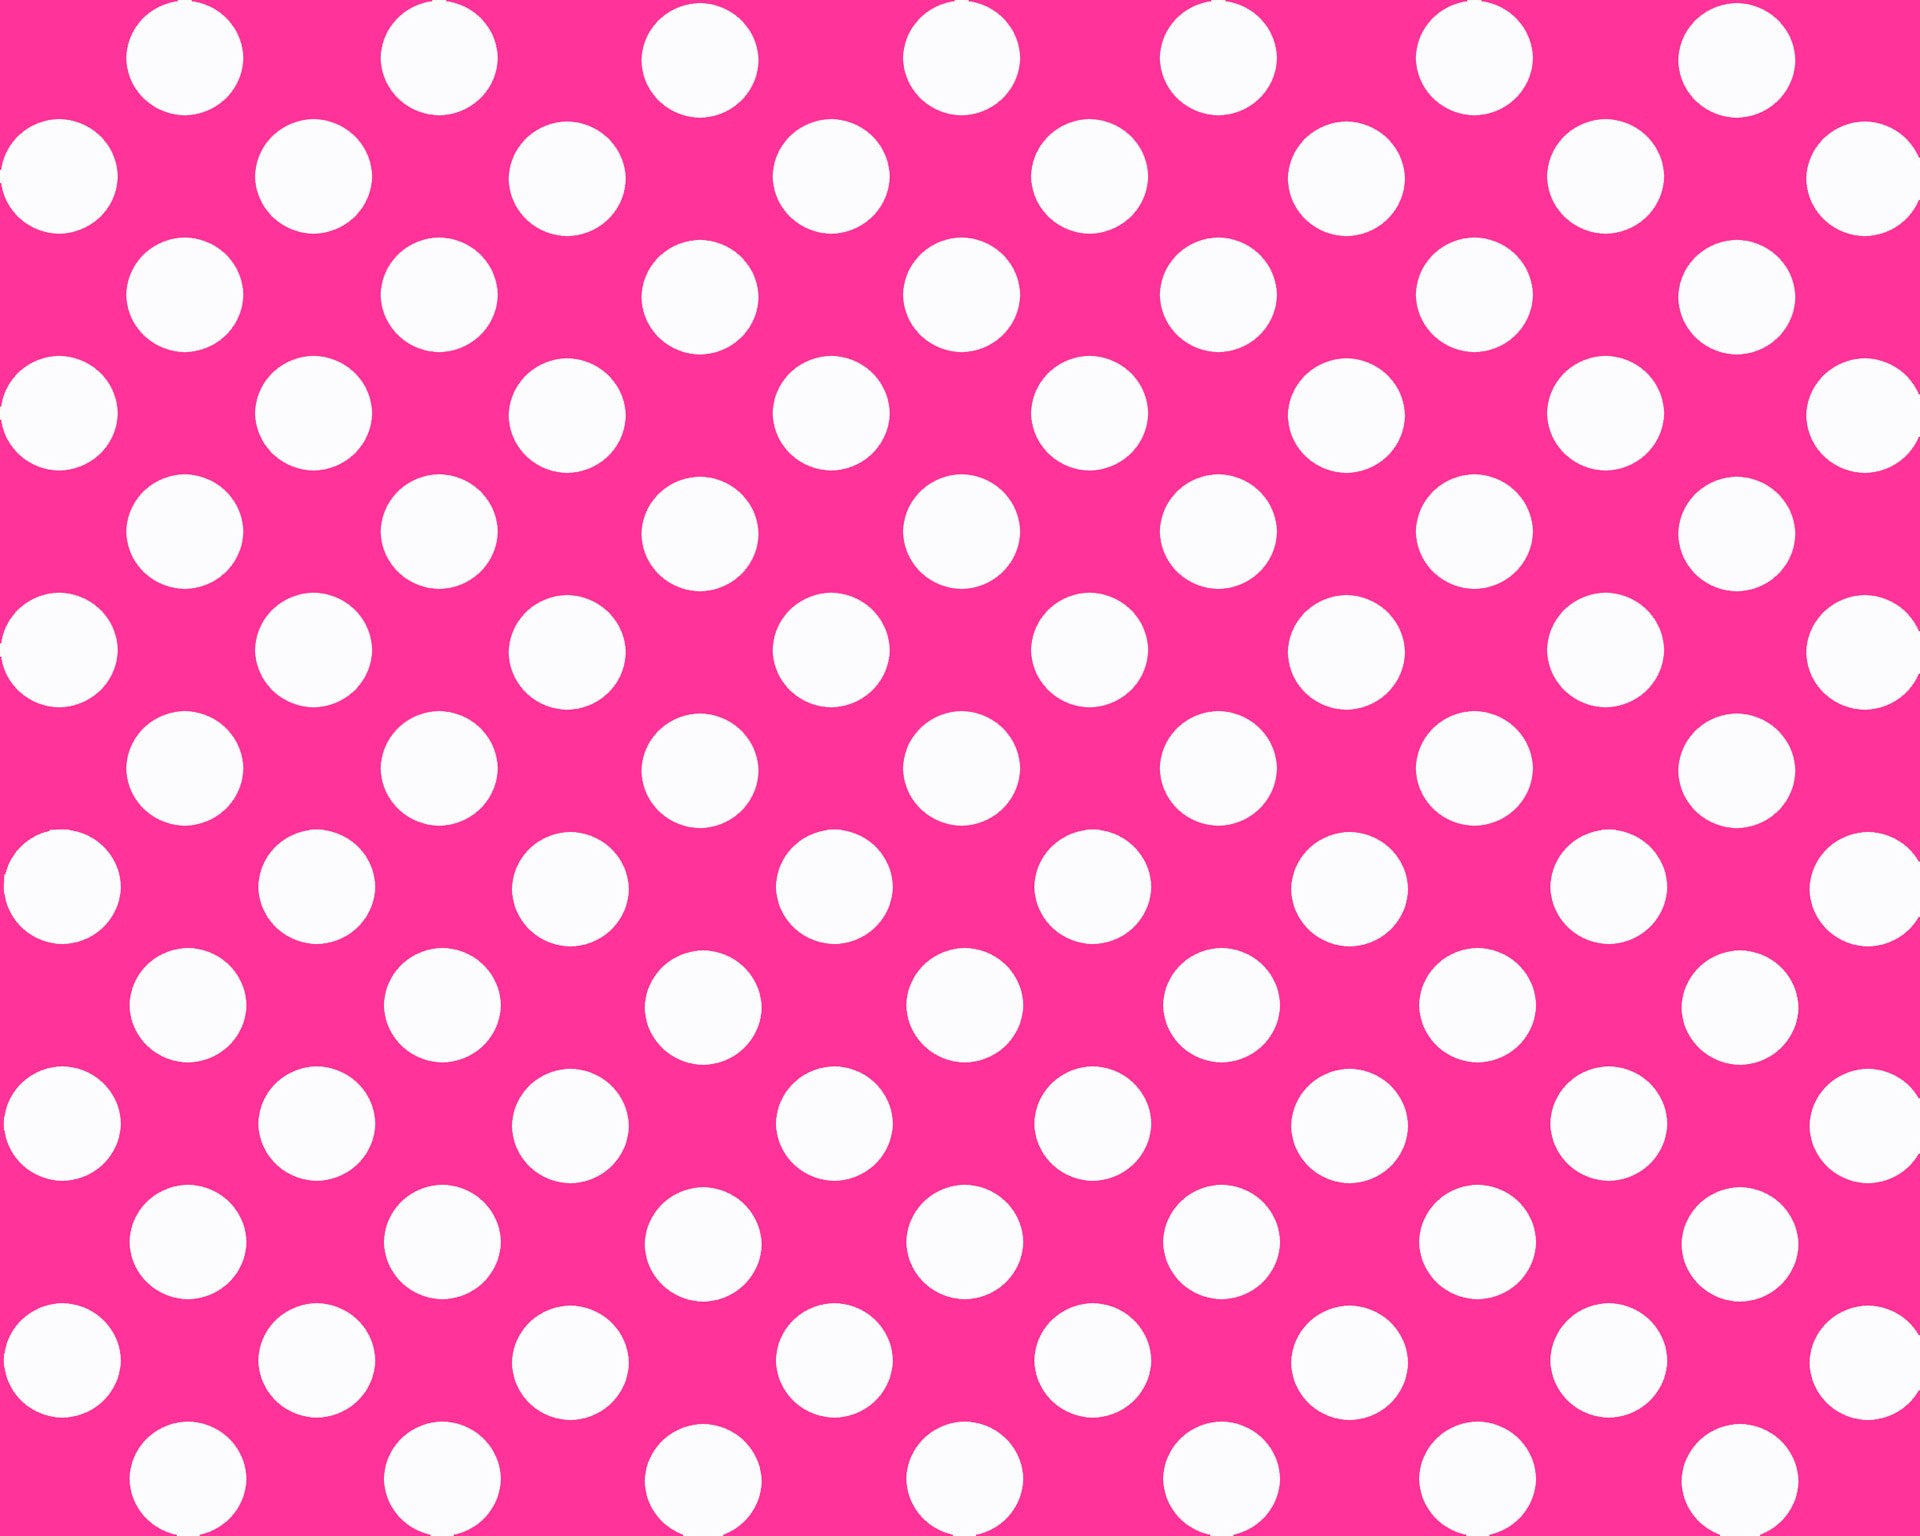 Pics photos pink polka dot s wallpaper - 1920x1536 You Can Download Pink Dots Hd Wallpapers Here Pink Dots Hd Wallpapers Available In High